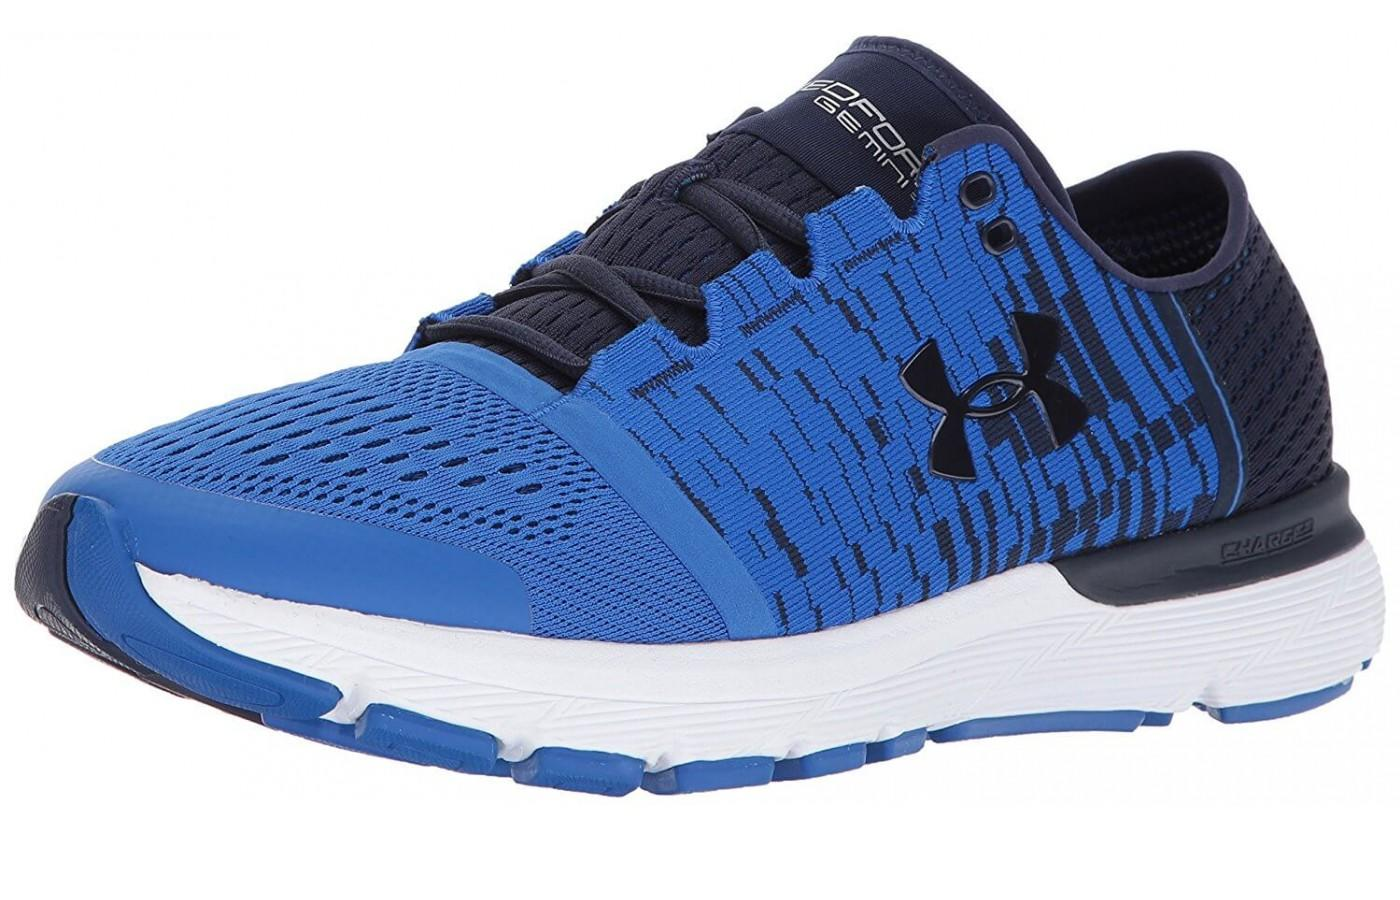 outlet store e05a3 fd68e Under Armour Speedform Gemini 3